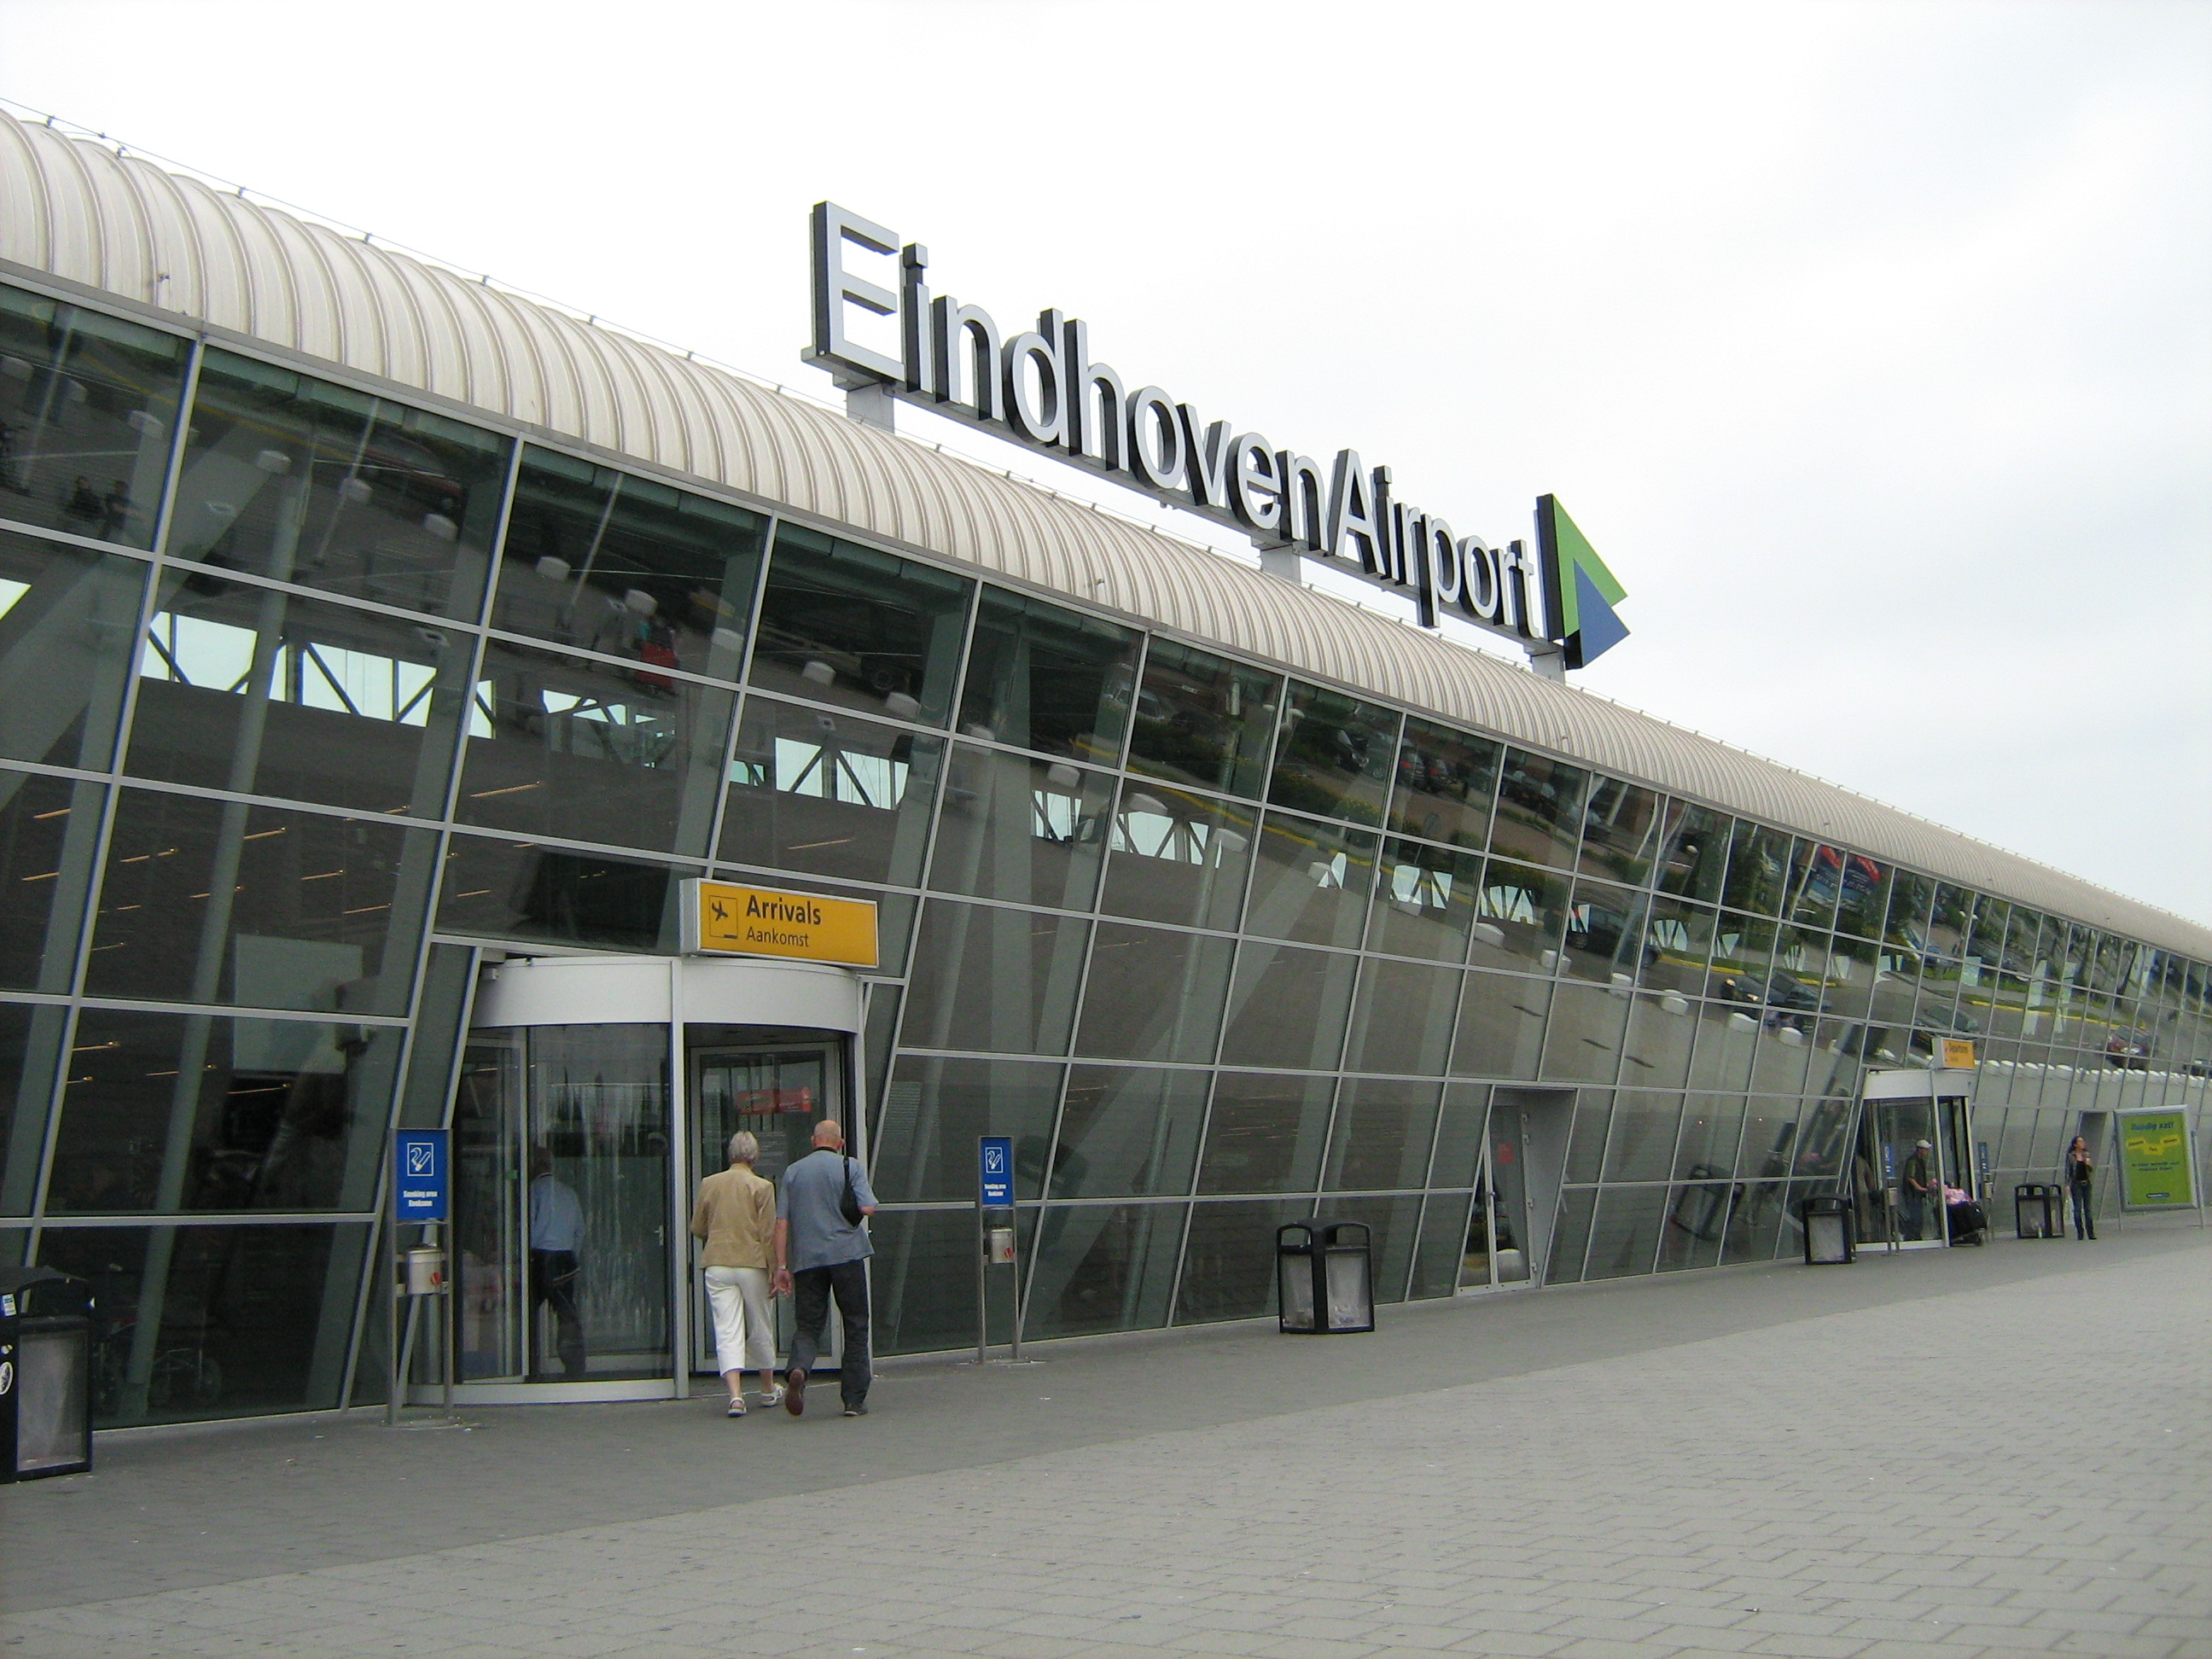 Resultado de imagen para Eindhoven Luchthaven among the fastest growing